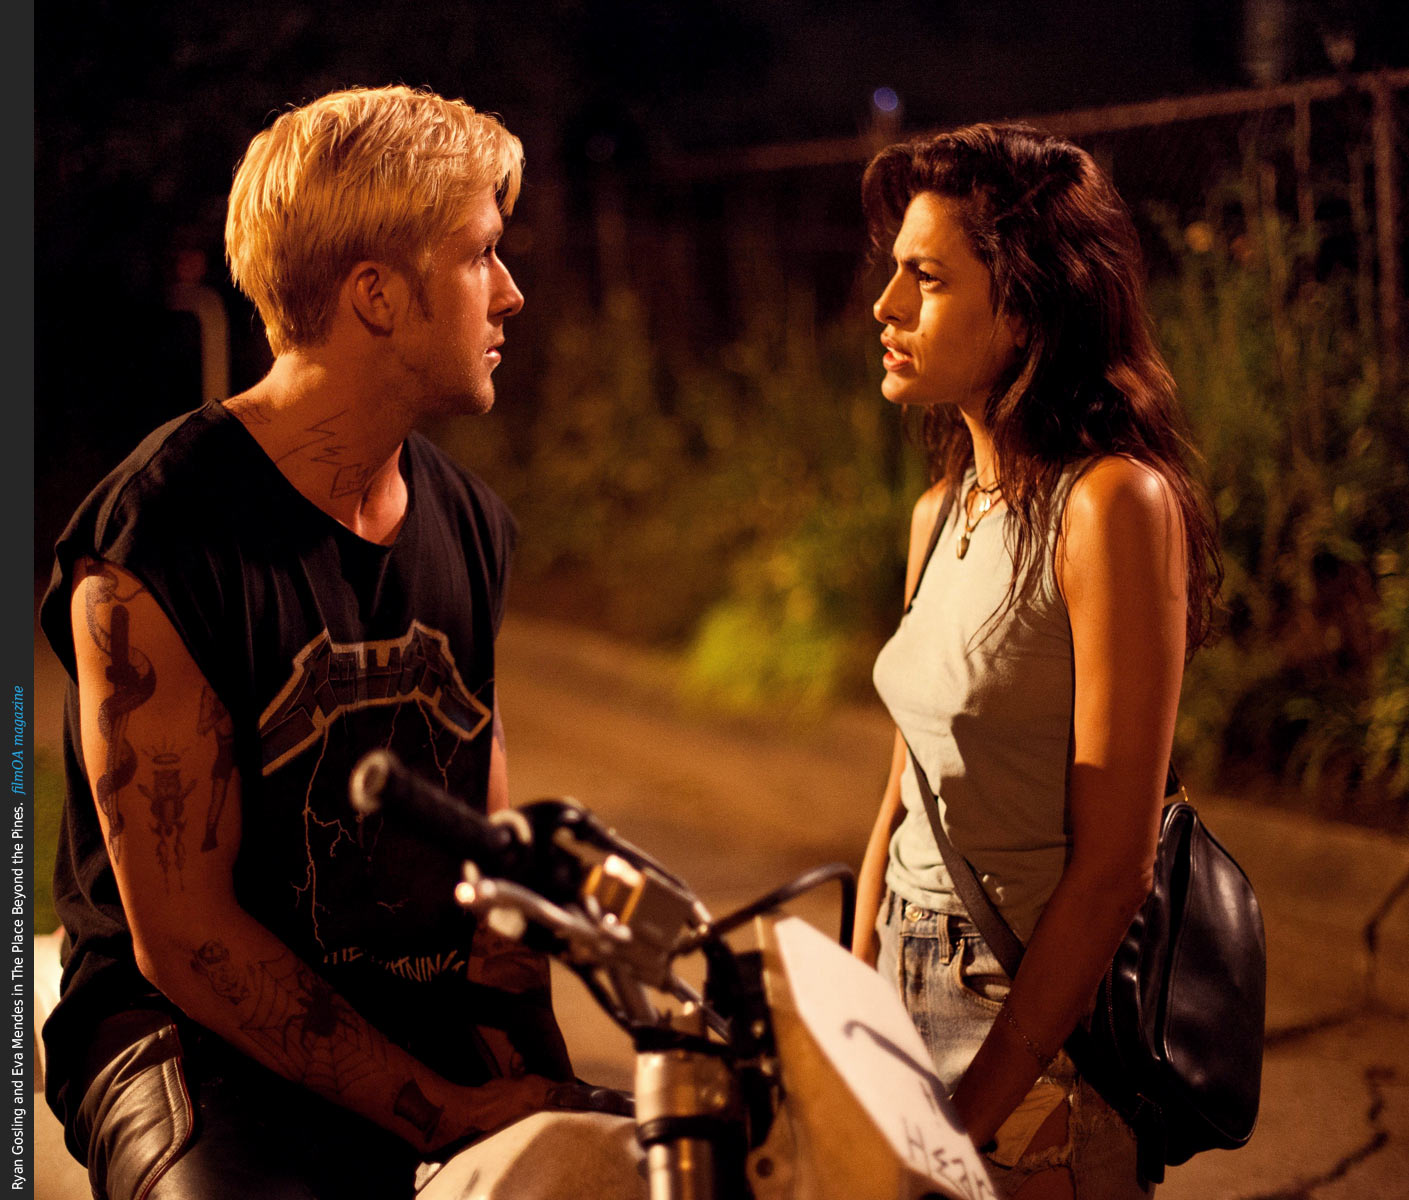 Ryan Gosling bike metallica shirt Eva Mendes The Place Beyond the Pines